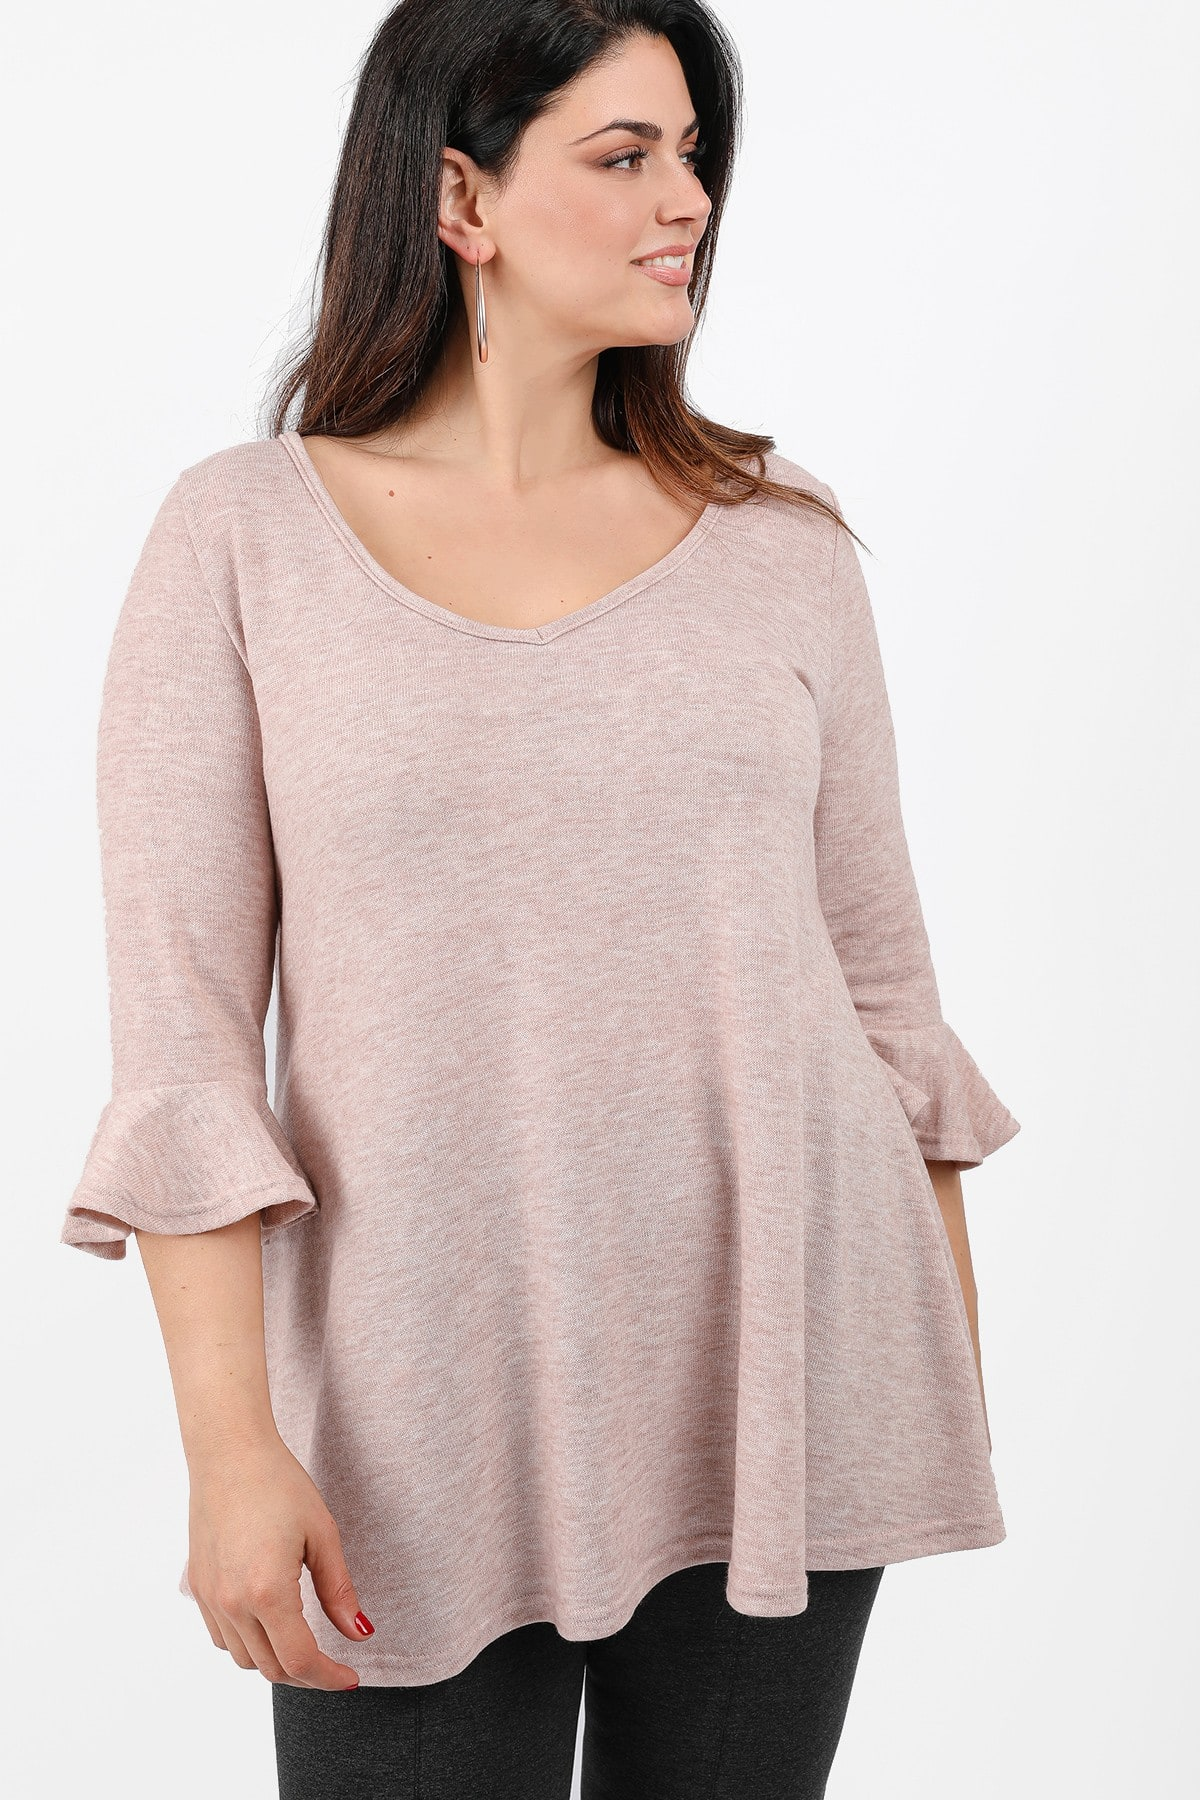 Longline blouse with ruffles on the sleeves